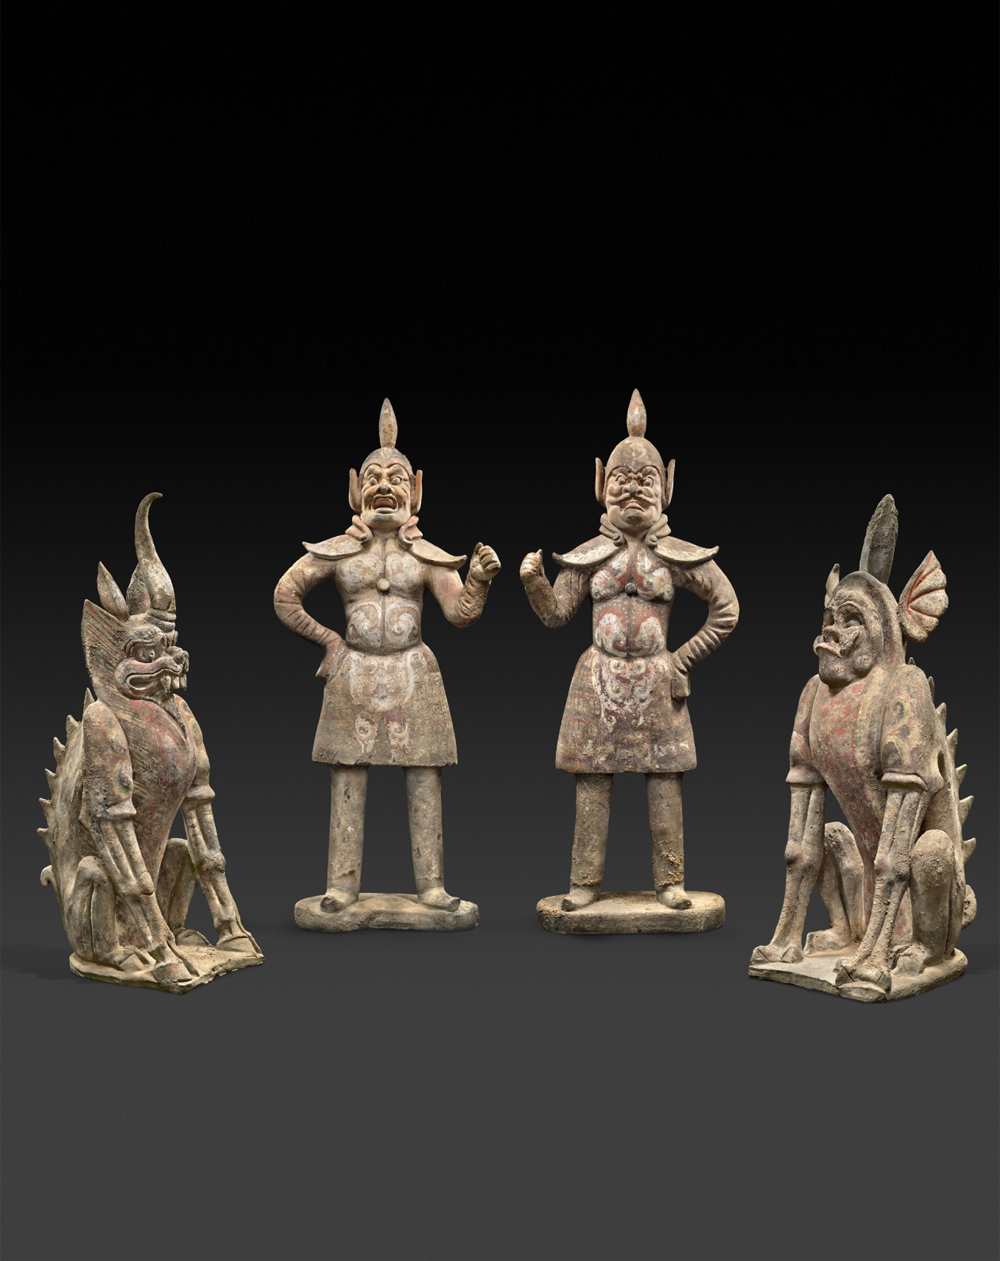 GROUP OF GUARDIAN FIGURES AND CHIMERAS